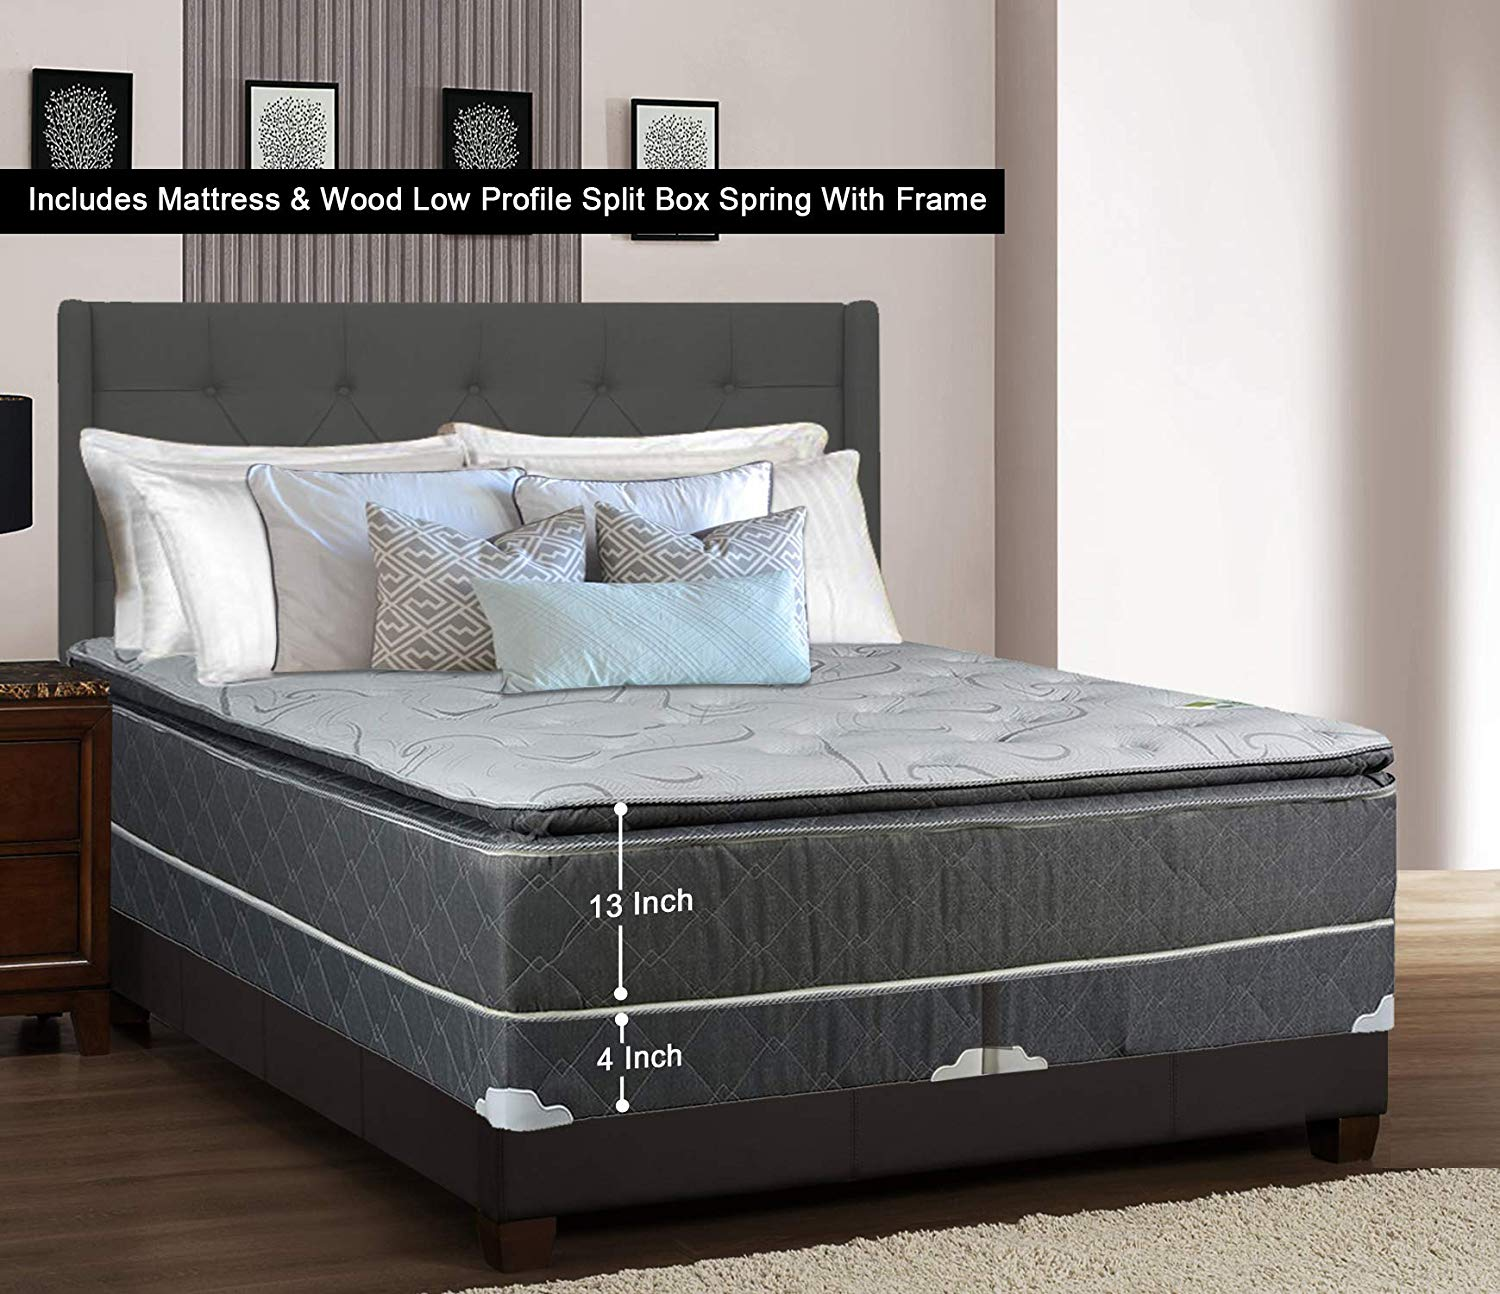 Greaton 9030vF-6/0-2LPS Fully Assembled Medium Plush Pillow Top Innerspring Mattress and 4-inch Split Wood Box Spring/Foundation Set with Frame Size| Grey and, California King, Color